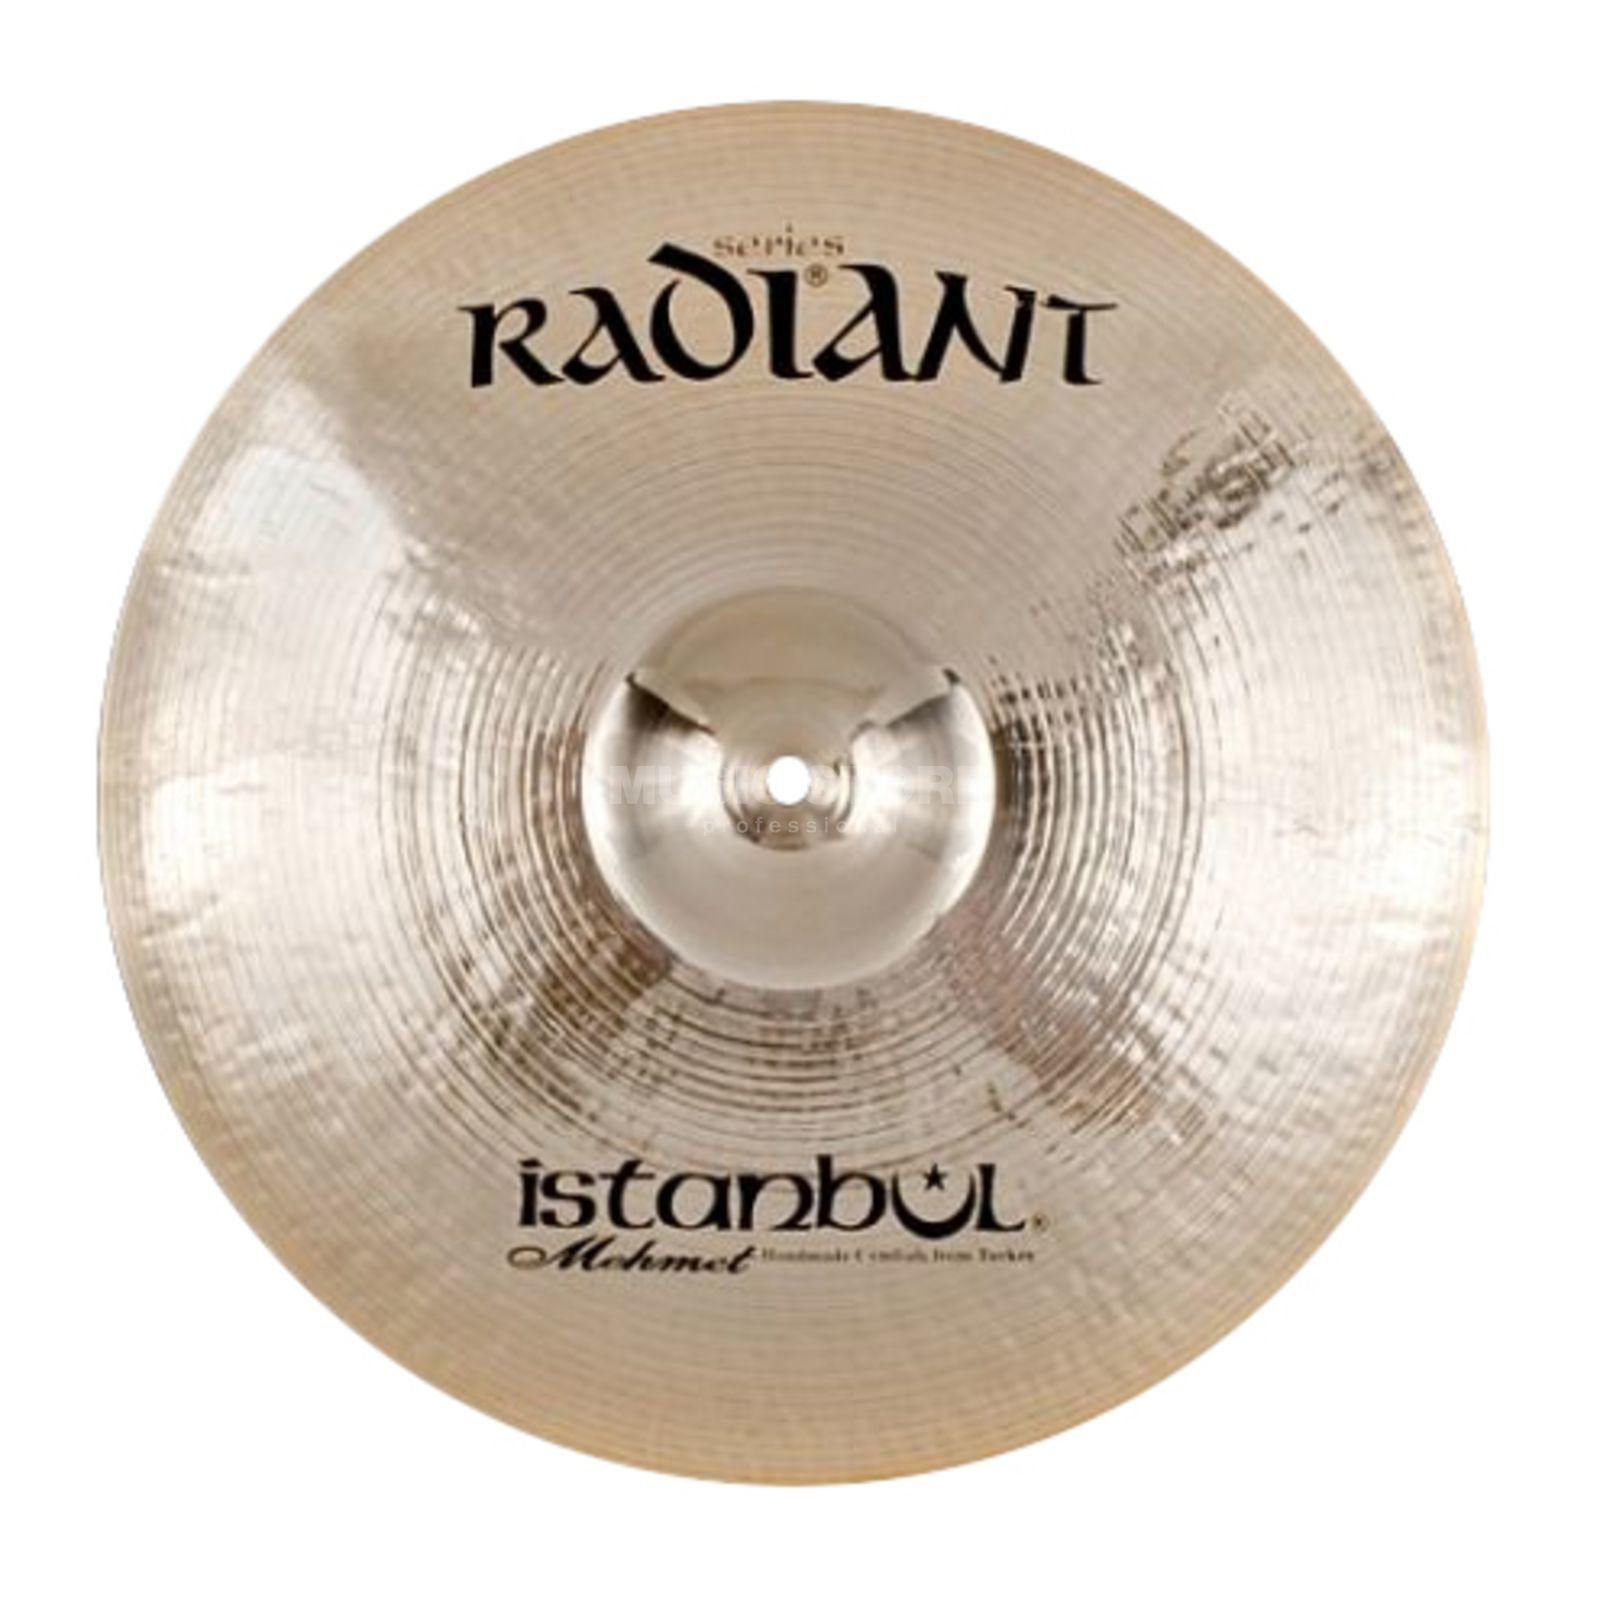 "Istanbul Radiant Medium Crash 18"", R-CM19 Produktbillede"